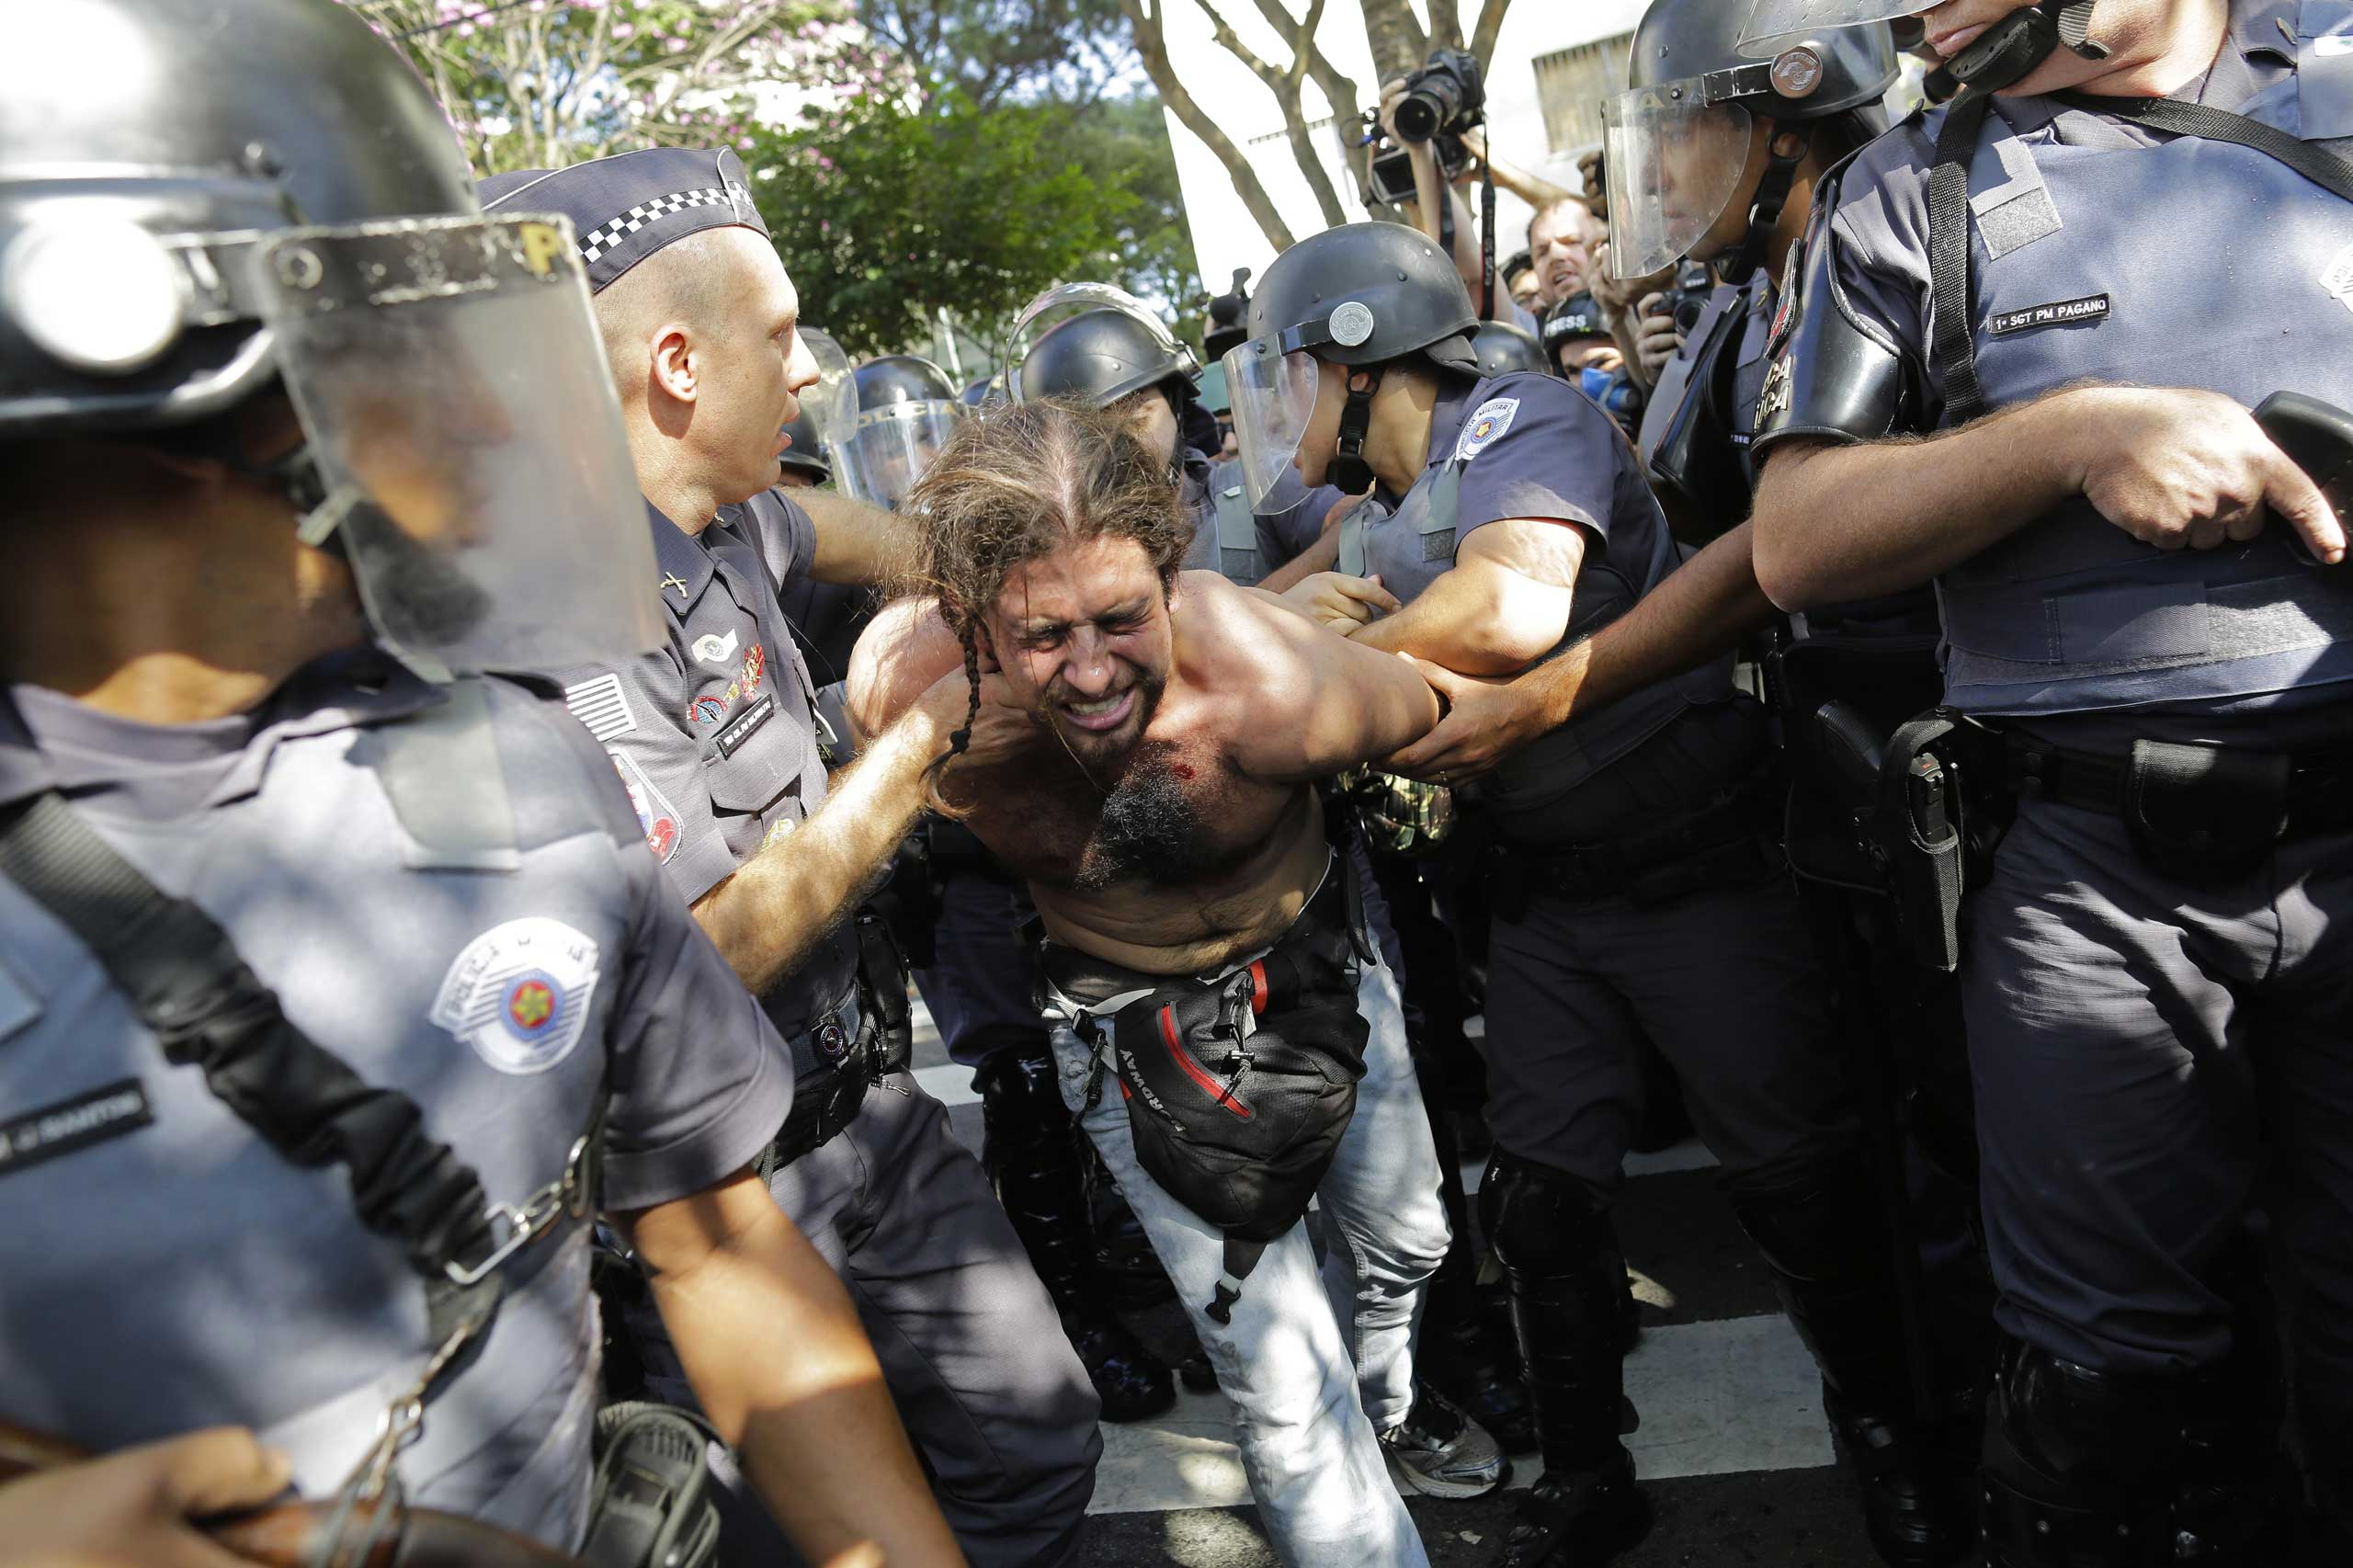 Brazil: Protest against public spending on World CupA protester is detained by police during a demonstration by people demanding better public services and against the money spent on the World Cup soccer tournament in Sao Paulo, June 12, 2014.